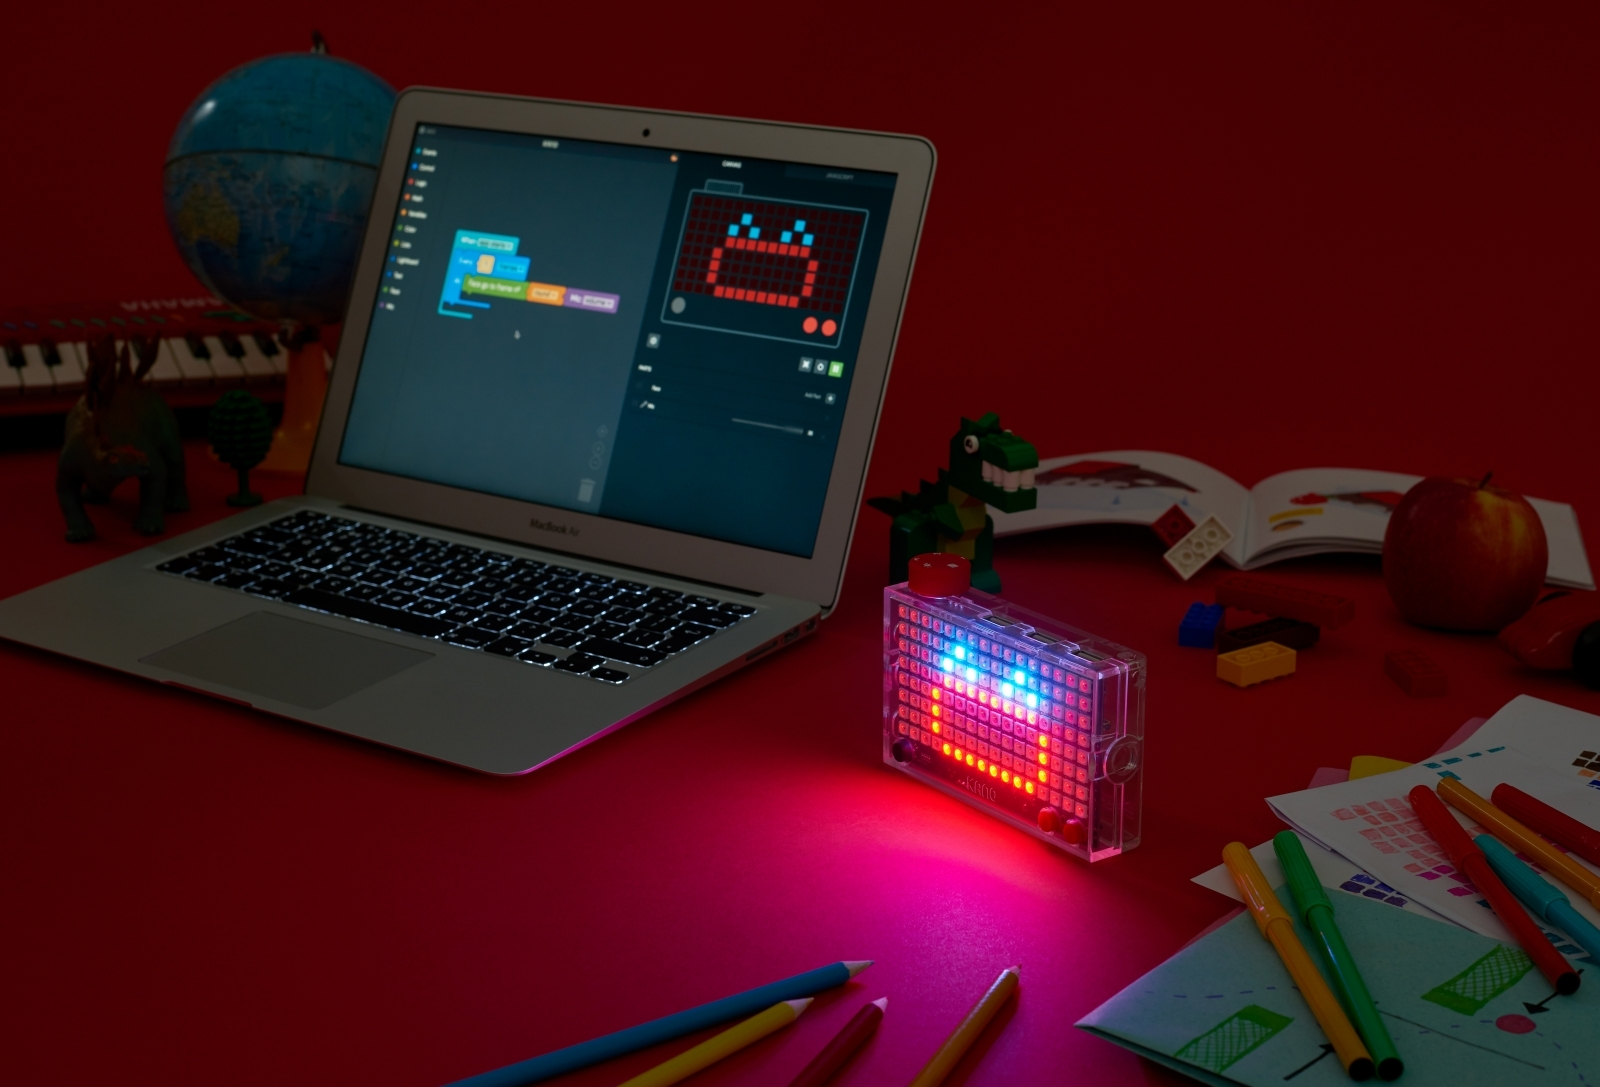 Kano Pixel Kit light-based computer